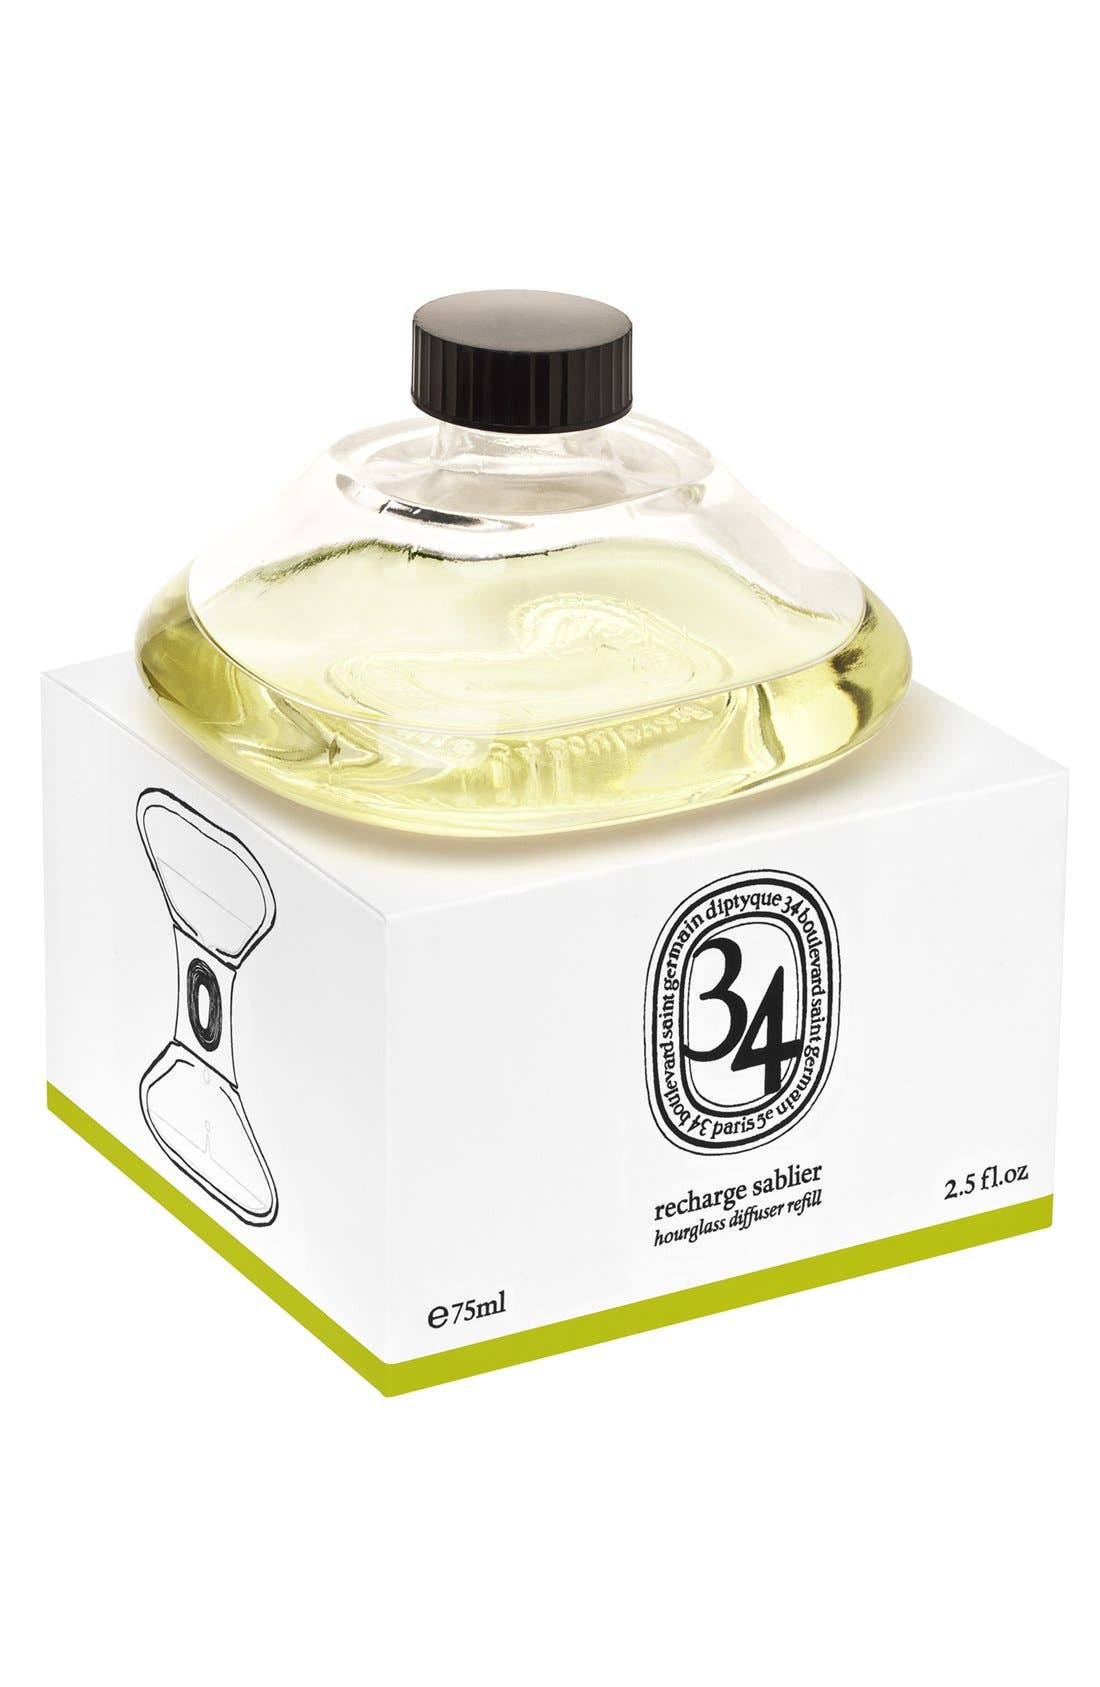 Alternate Image 1 Selected - diptyque '34 Boulevard Saint Germain' Hourglass Room Diffuser Refill